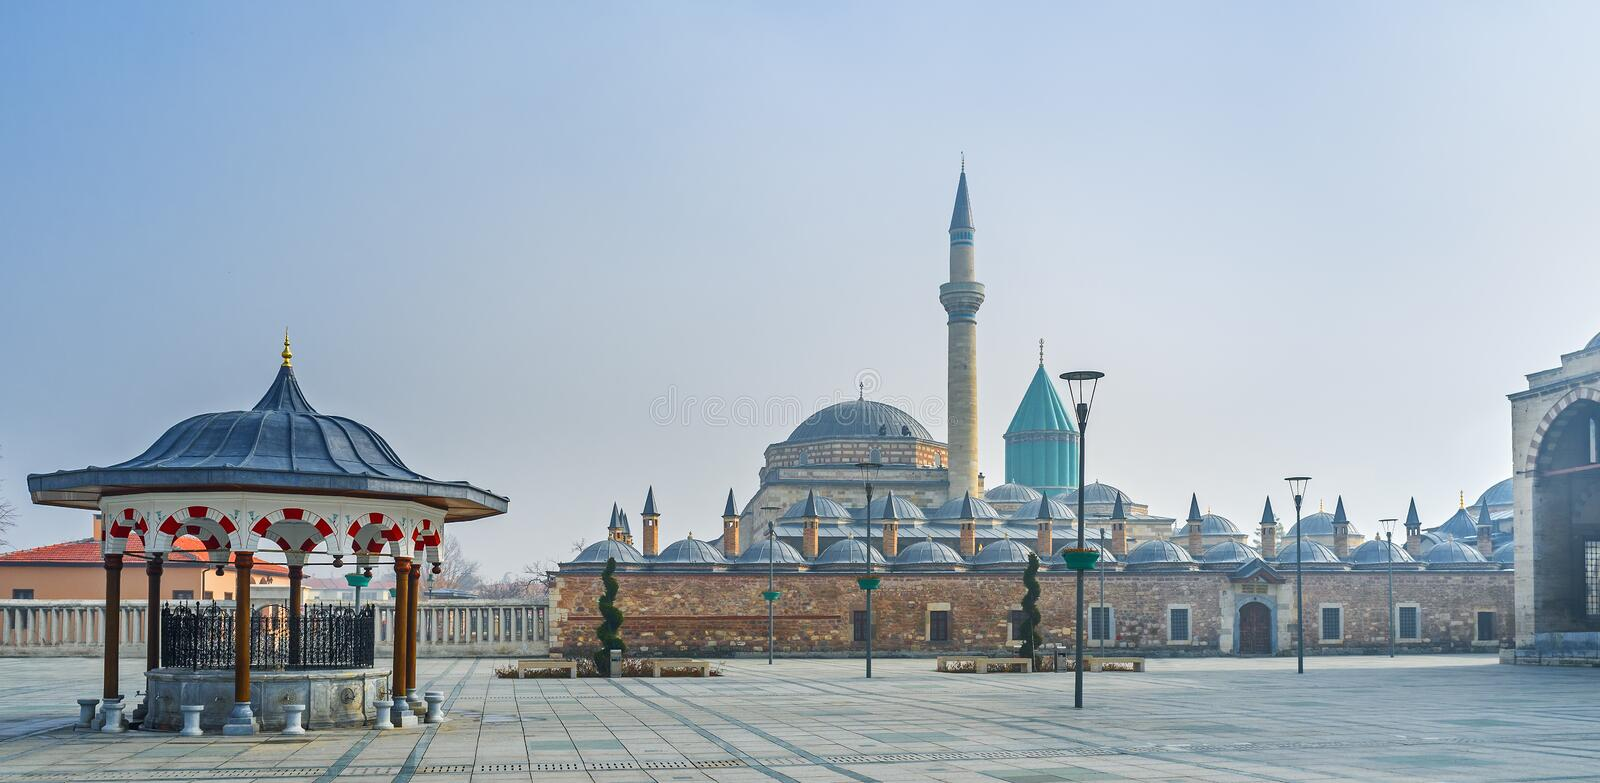 The Mevlana square. The panoramic view of the Mevlana Museum in light morning haze with the beautiful ablution fountain on the foreground, Konya, Turkey royalty free stock photo